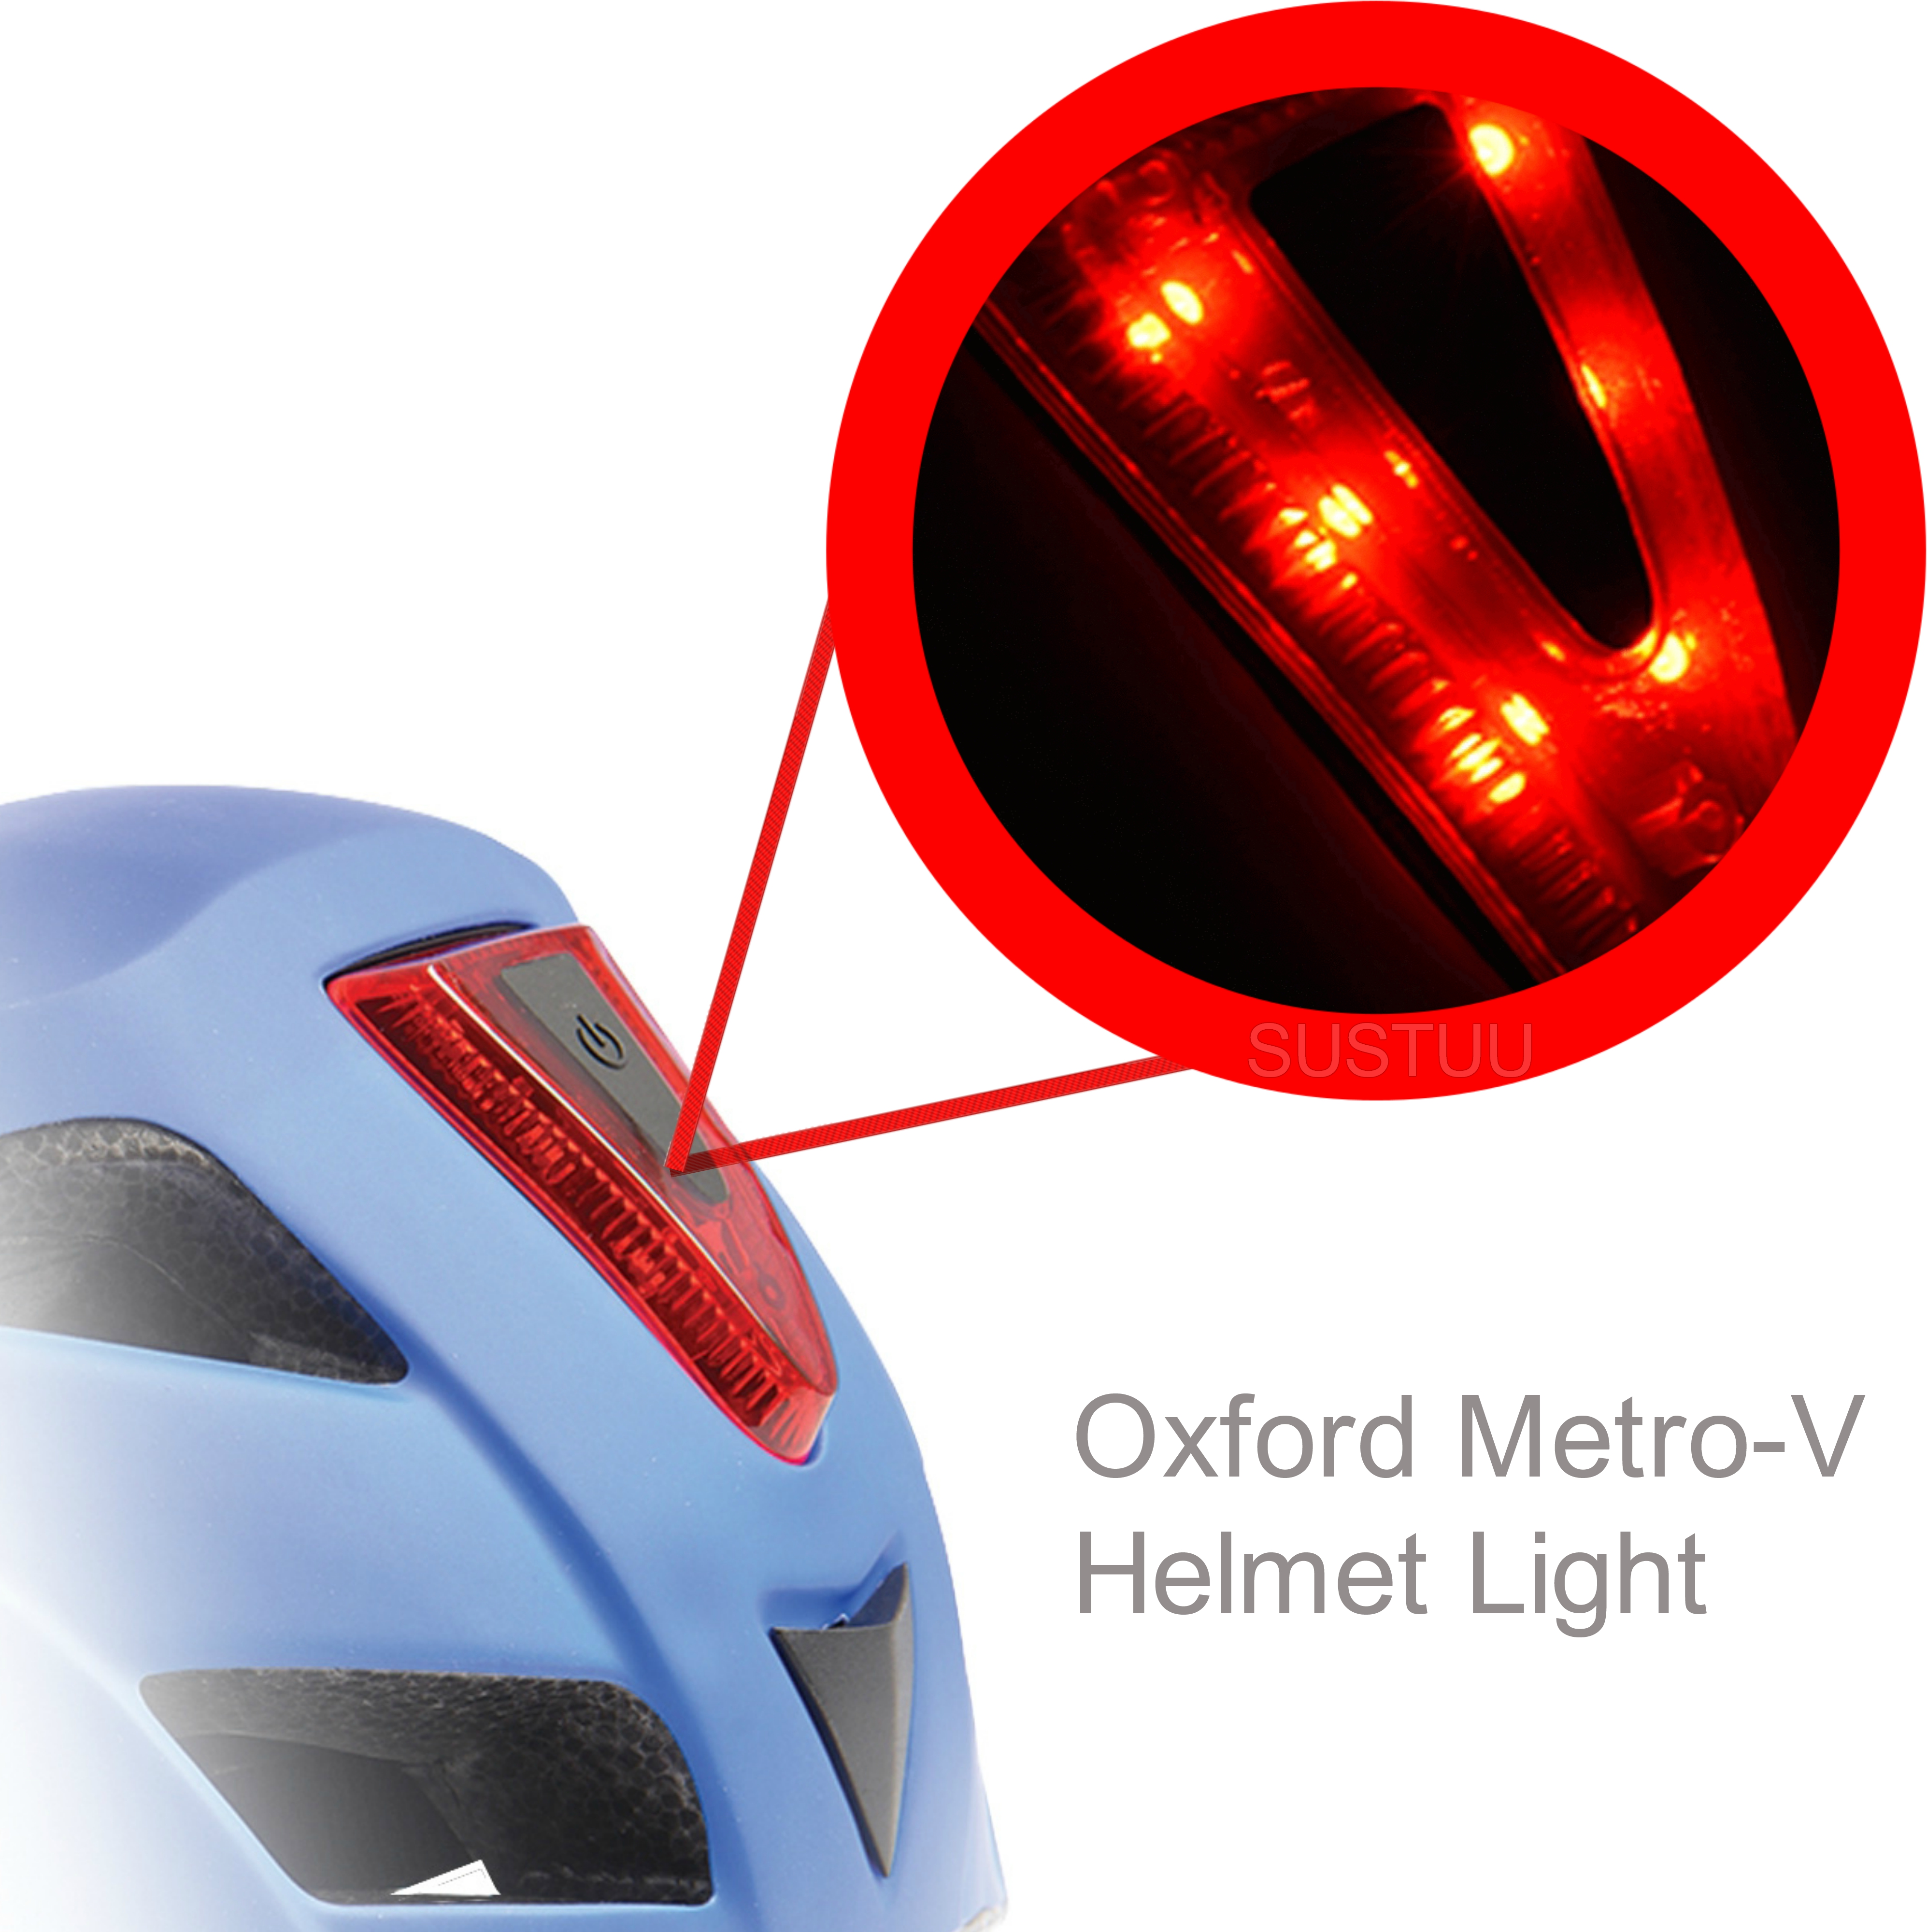 Oxford Metro-V Helmet Light Safty Flashing & Chasing Mode 6 LED Rear Features